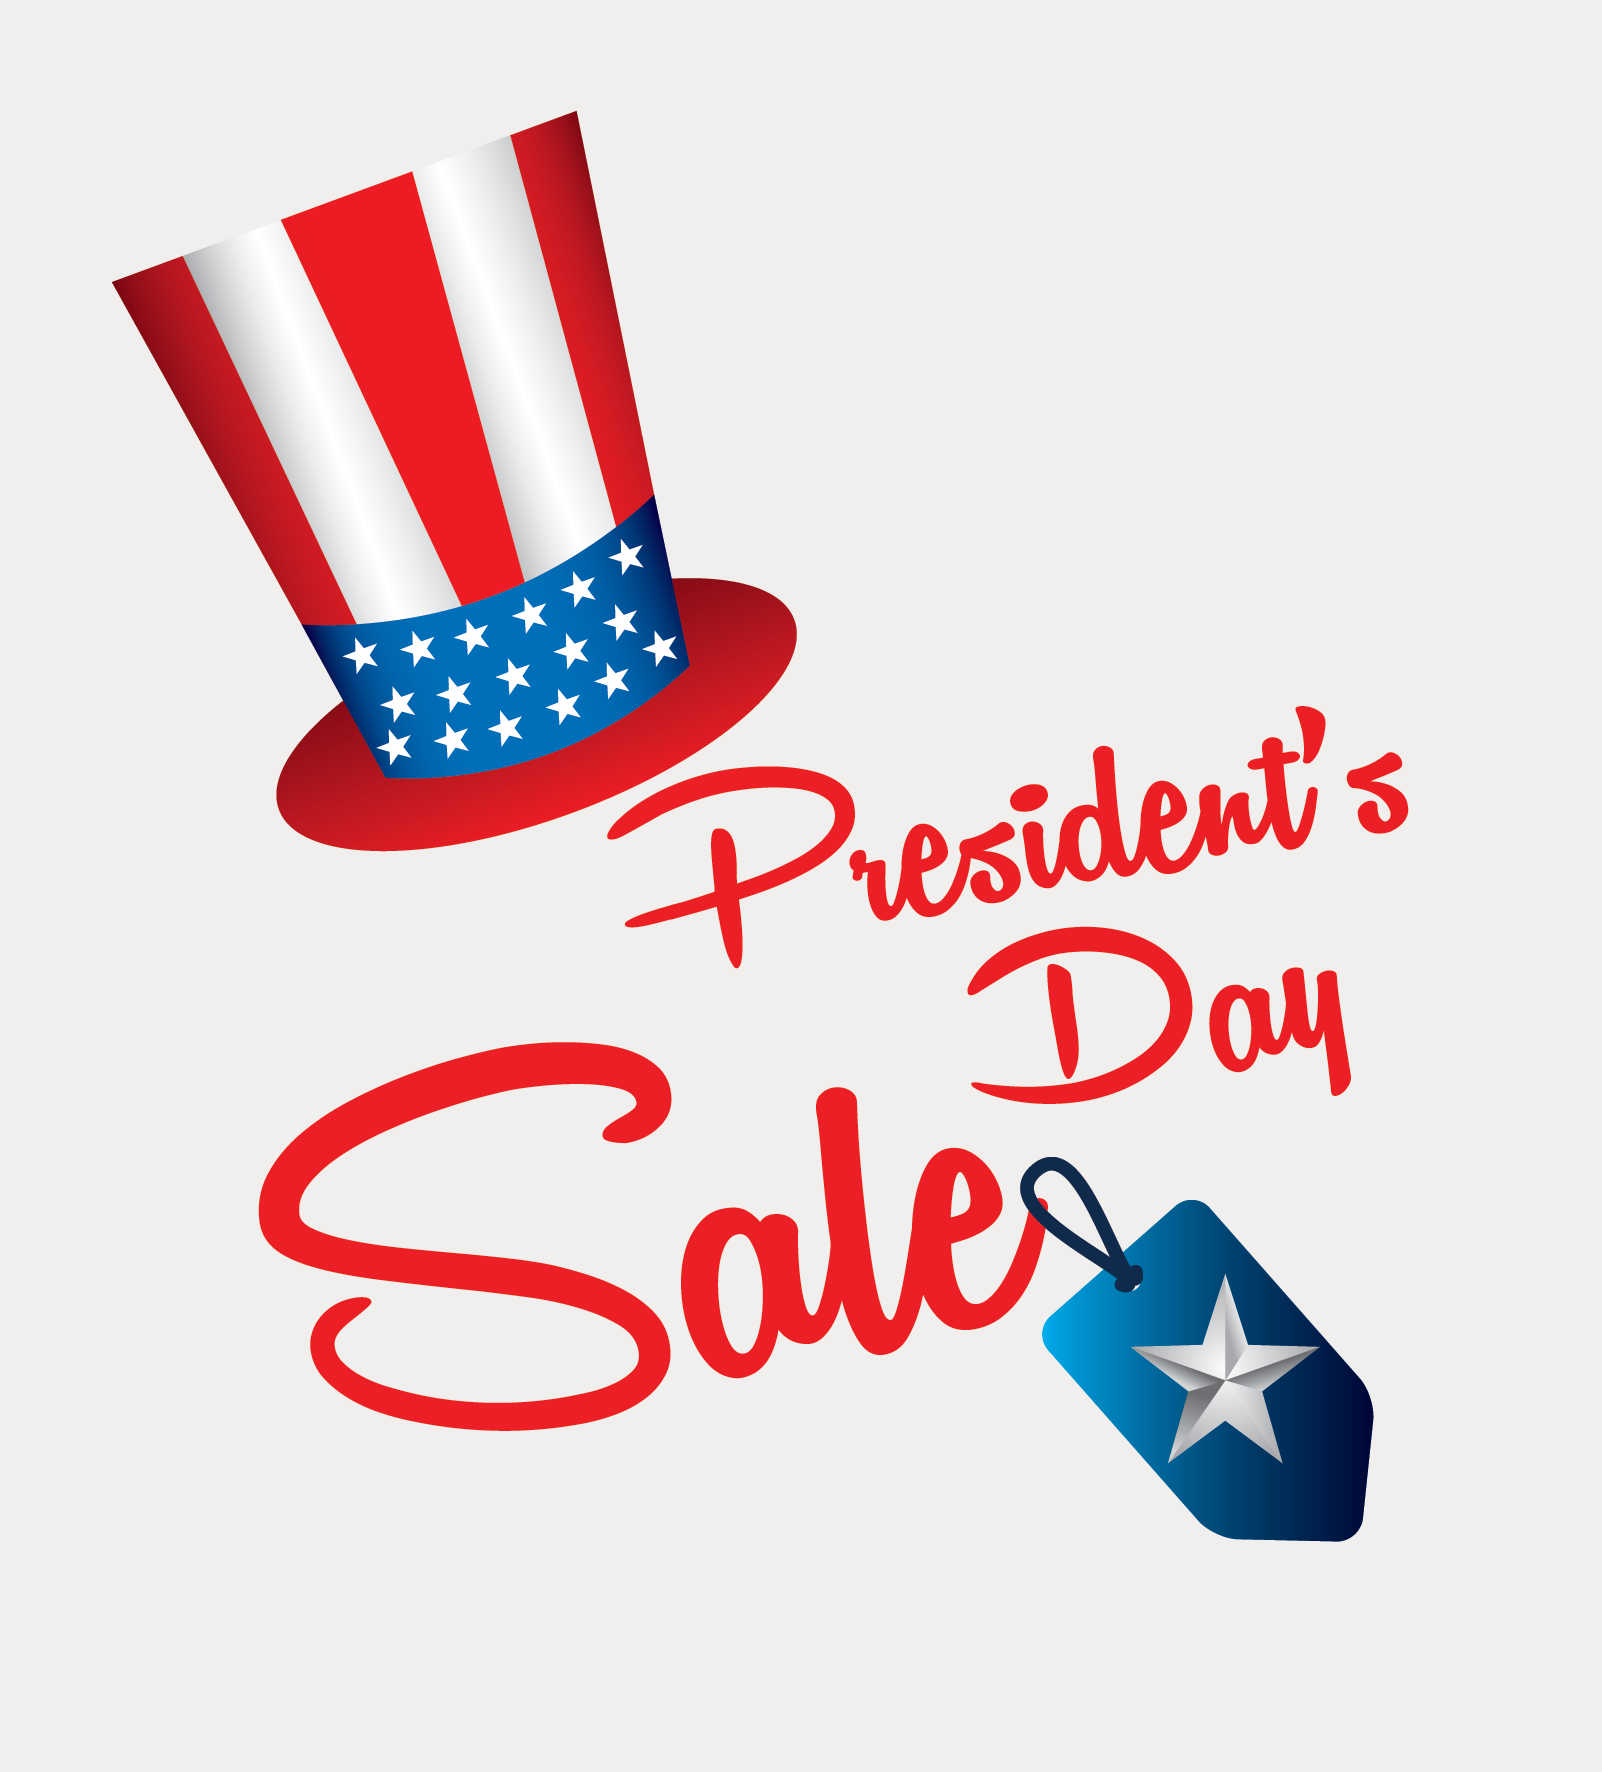 Presidents Day Blowout Sale - 15% off everything!